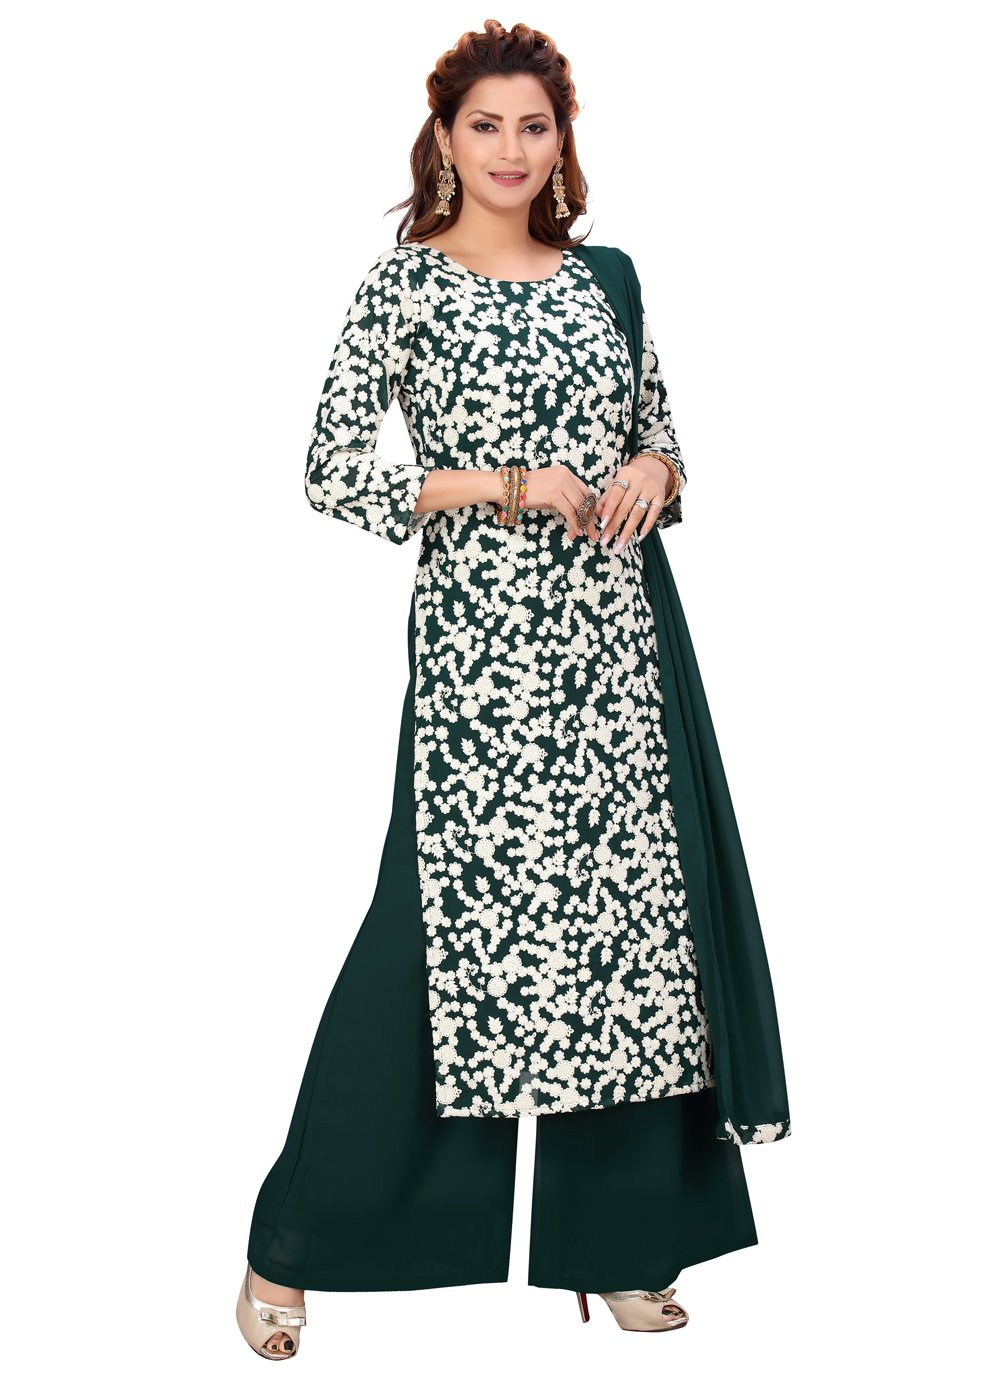 Faux Georgette Green Readymade Suit